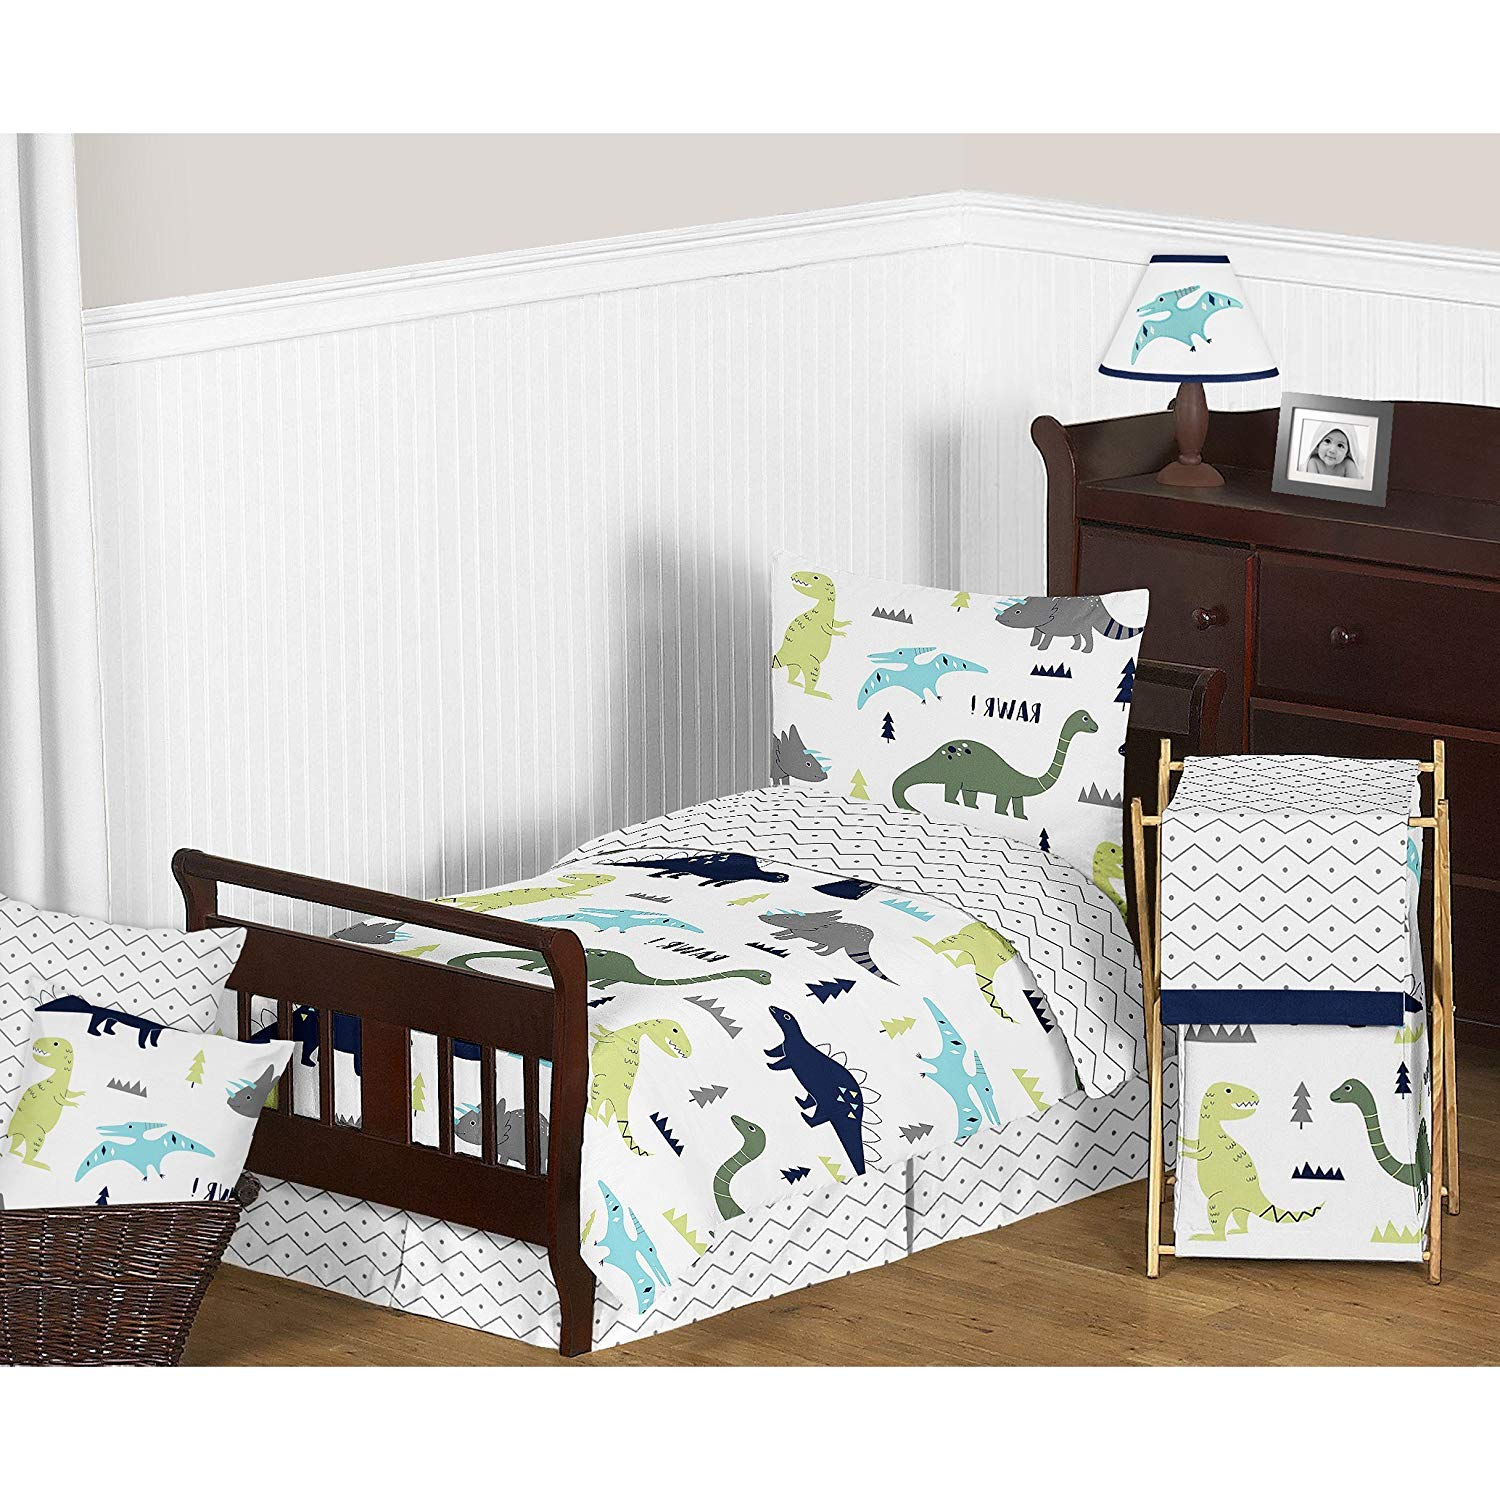 L&M 4 Piece Kids Blue Green Dinosaur Comforter Set Twin, Grey Teal Dinosaurs Bedding Cute T-Rex Stegosaurus Long Neck Design Gray White Chevron Reptile Pattern Zigzag Ikat Jacquard, Polyester